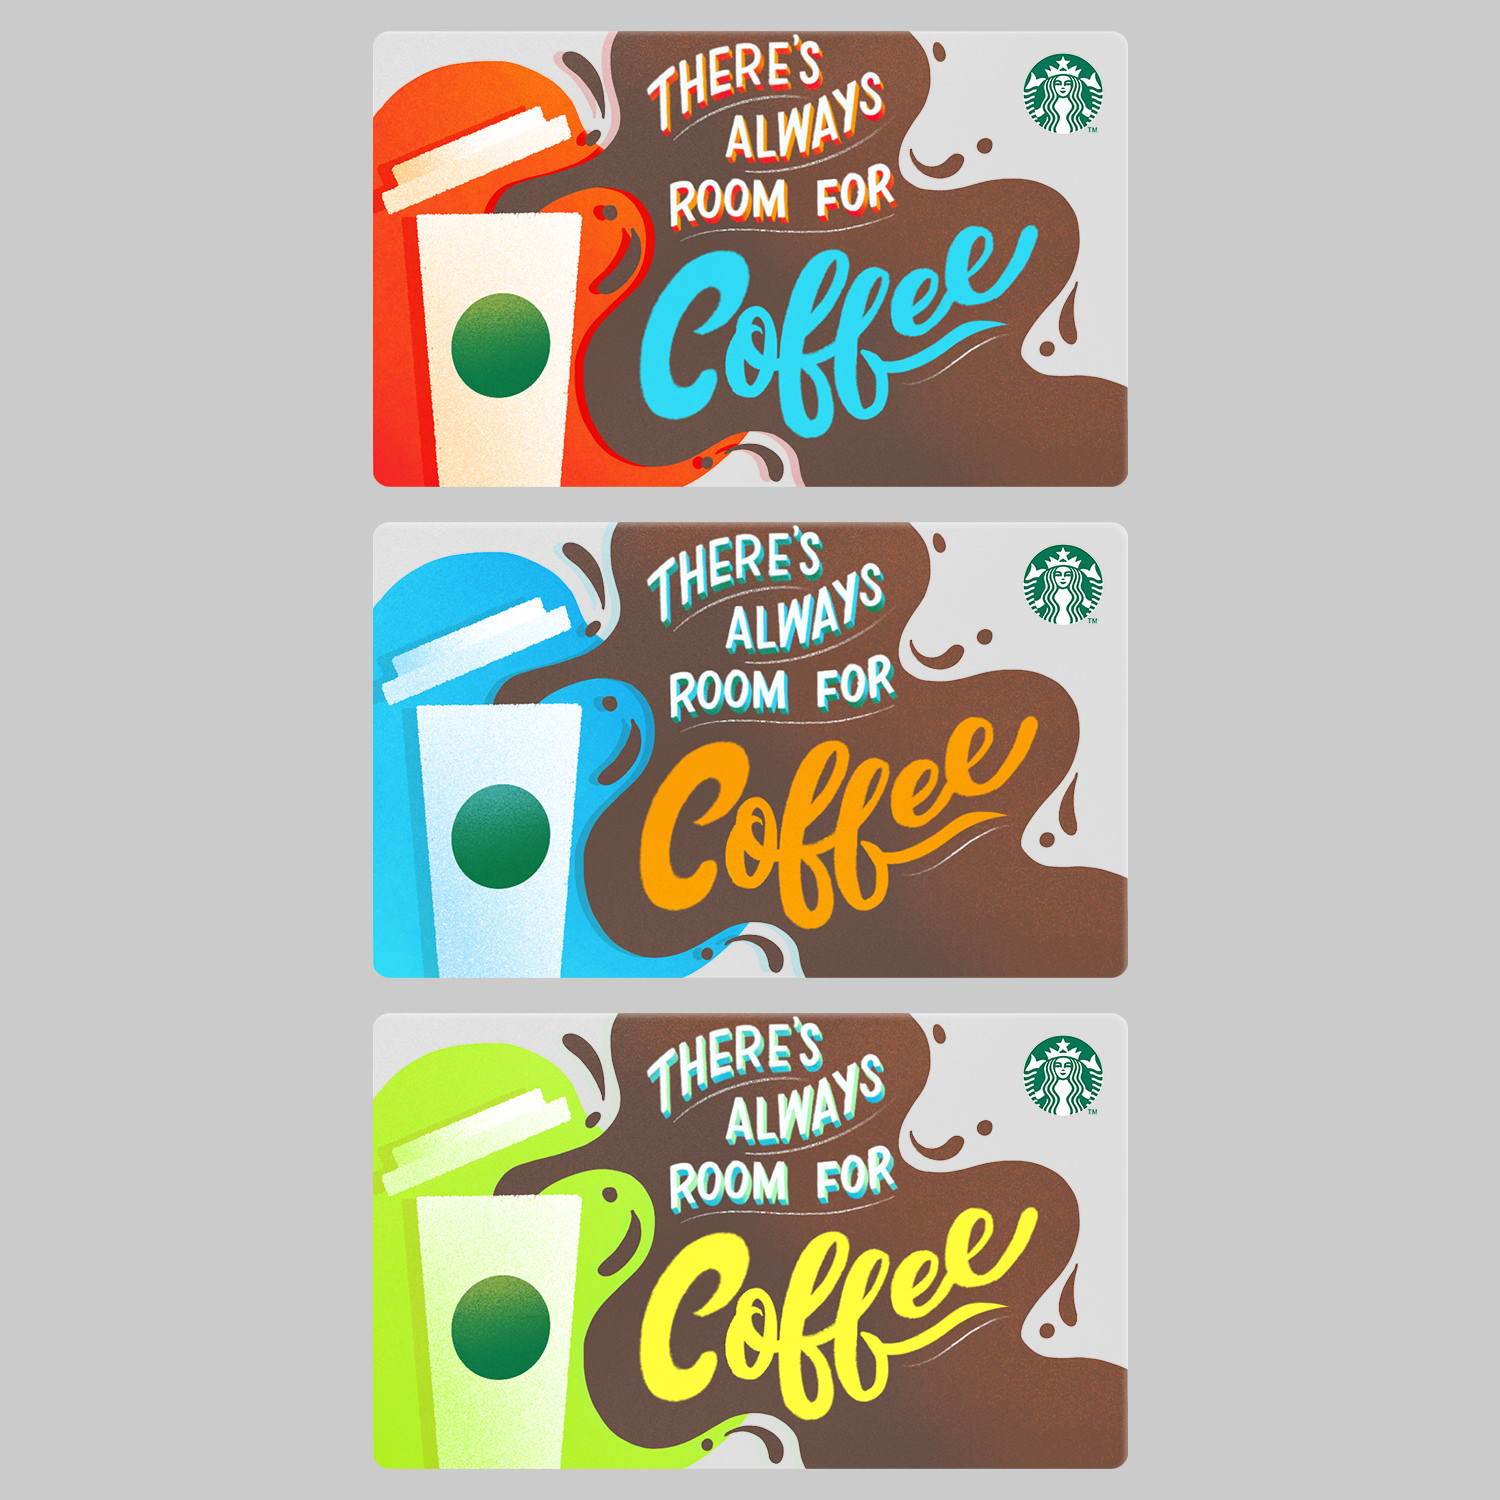 starbucks-gift-card-color-comps